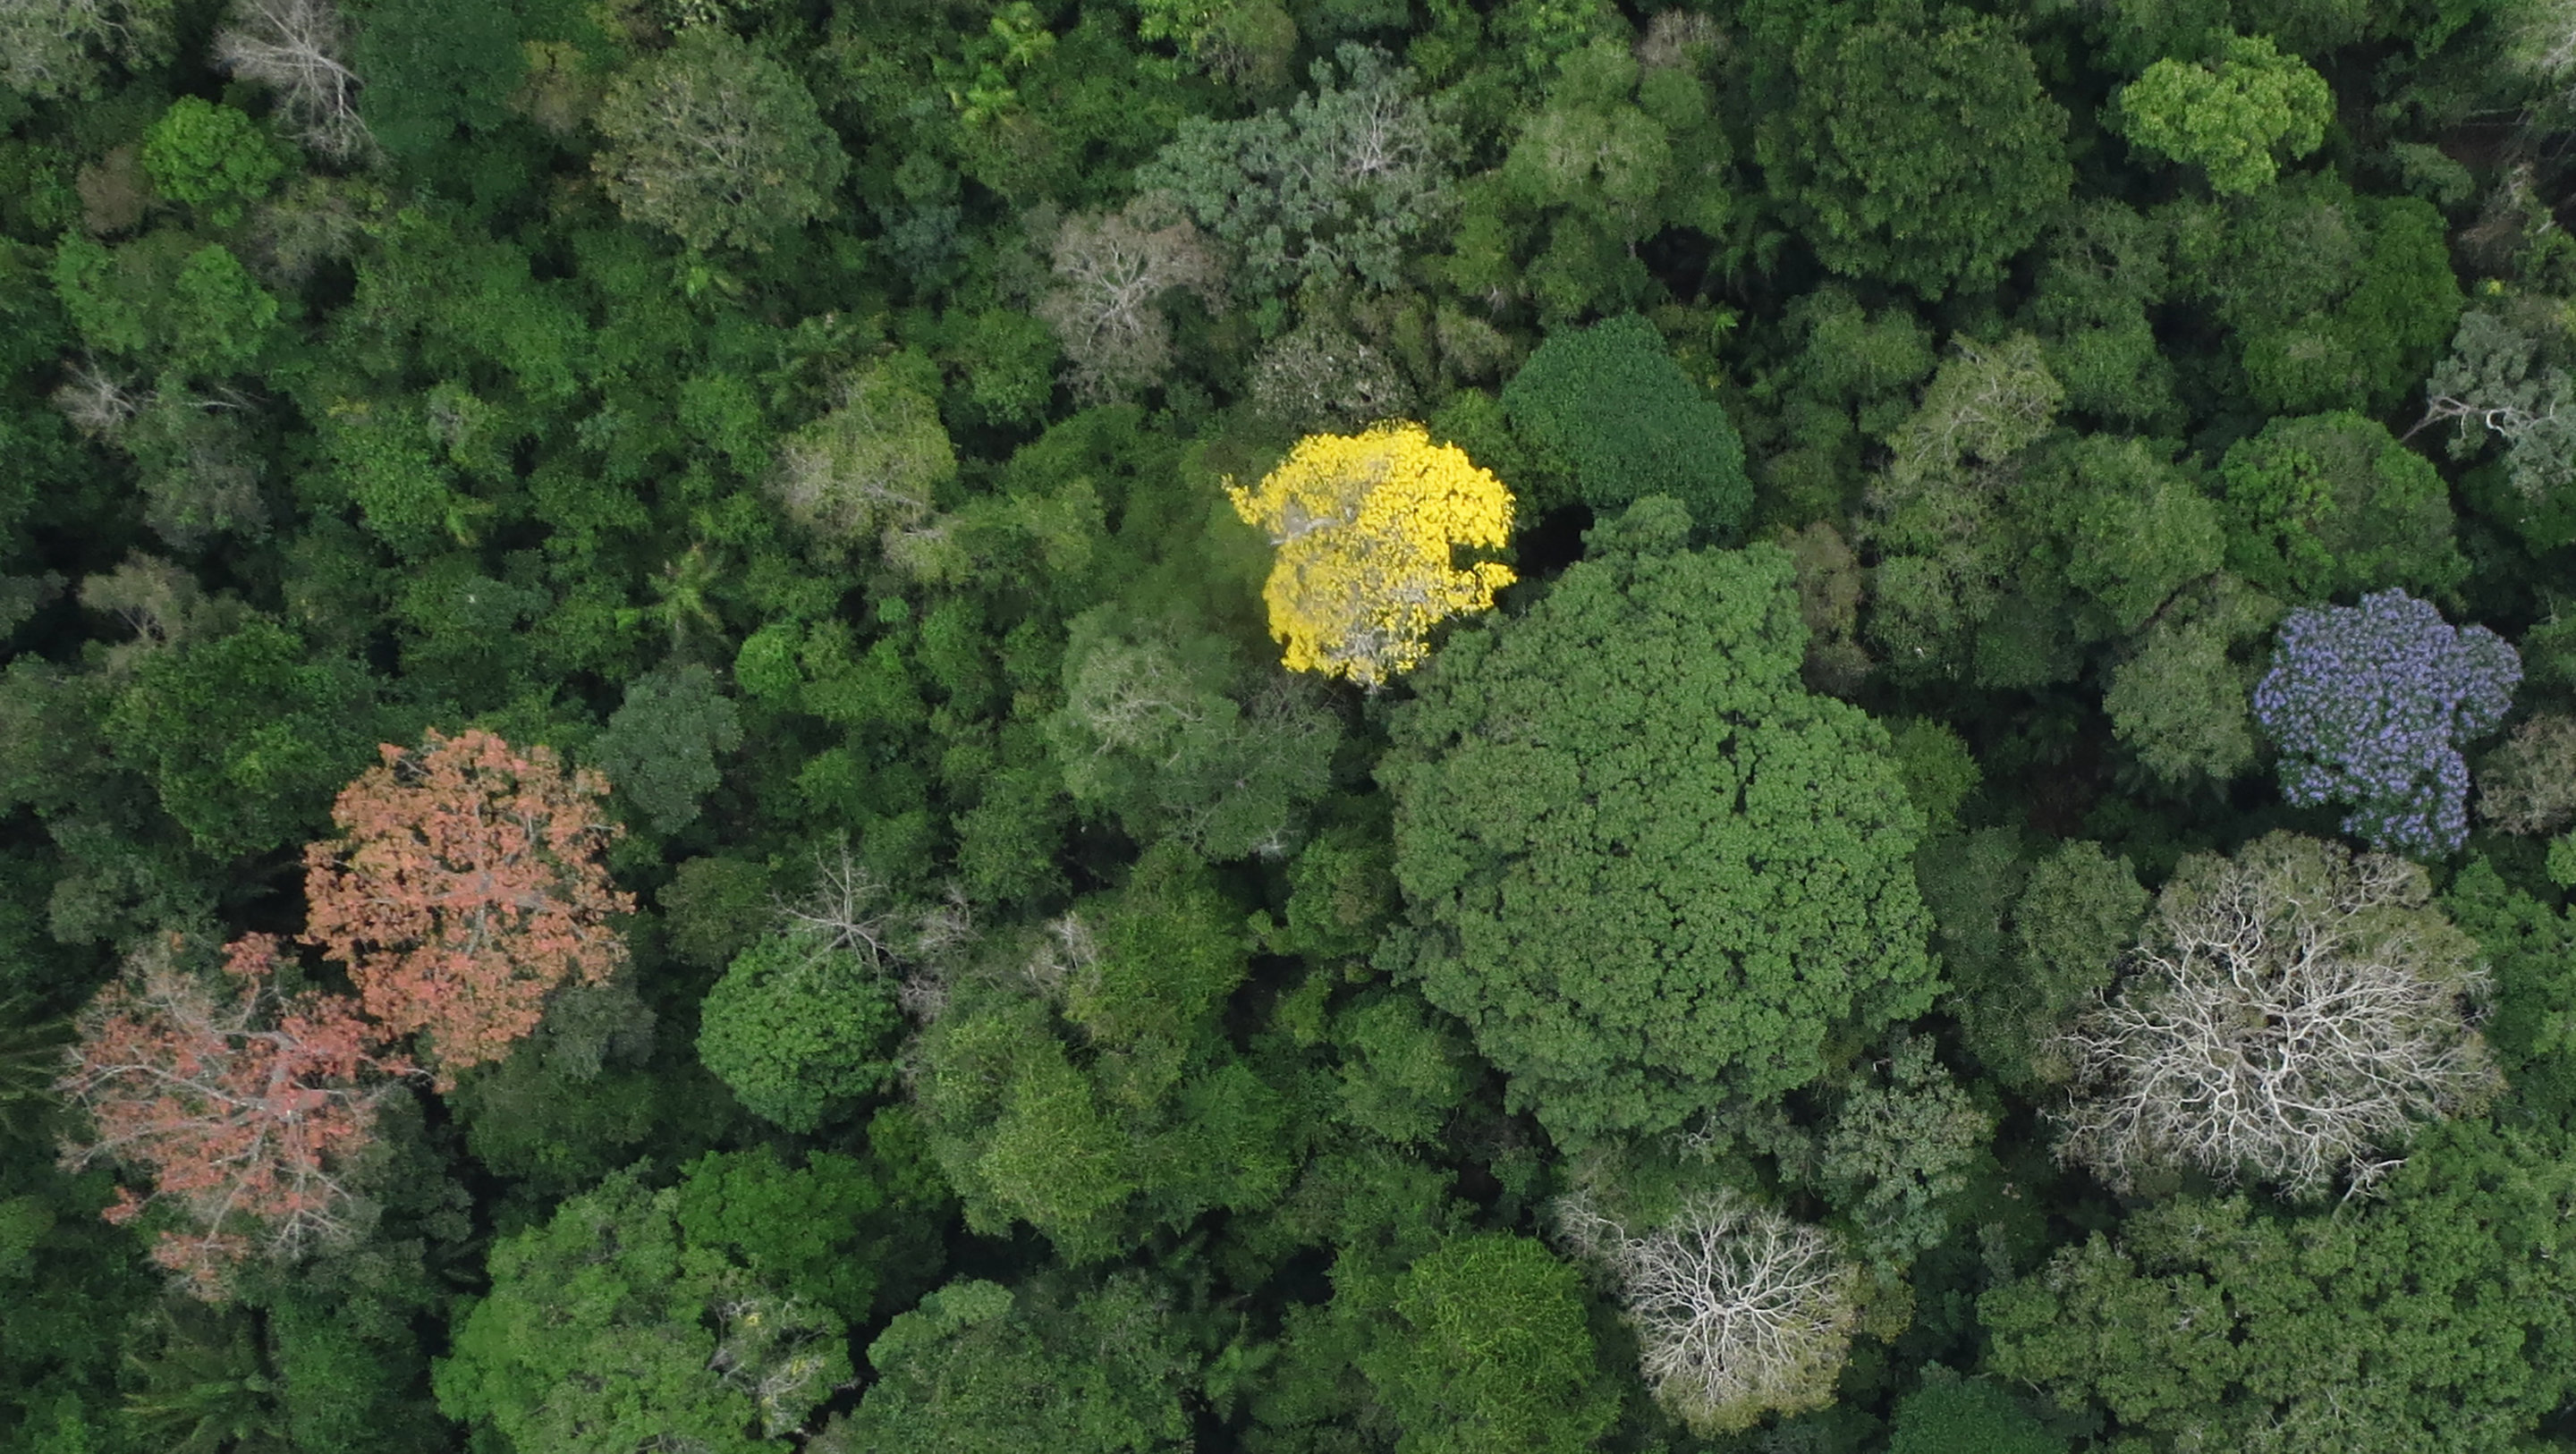 New Study Answers Old Questions About Why Tropical Forests Are So